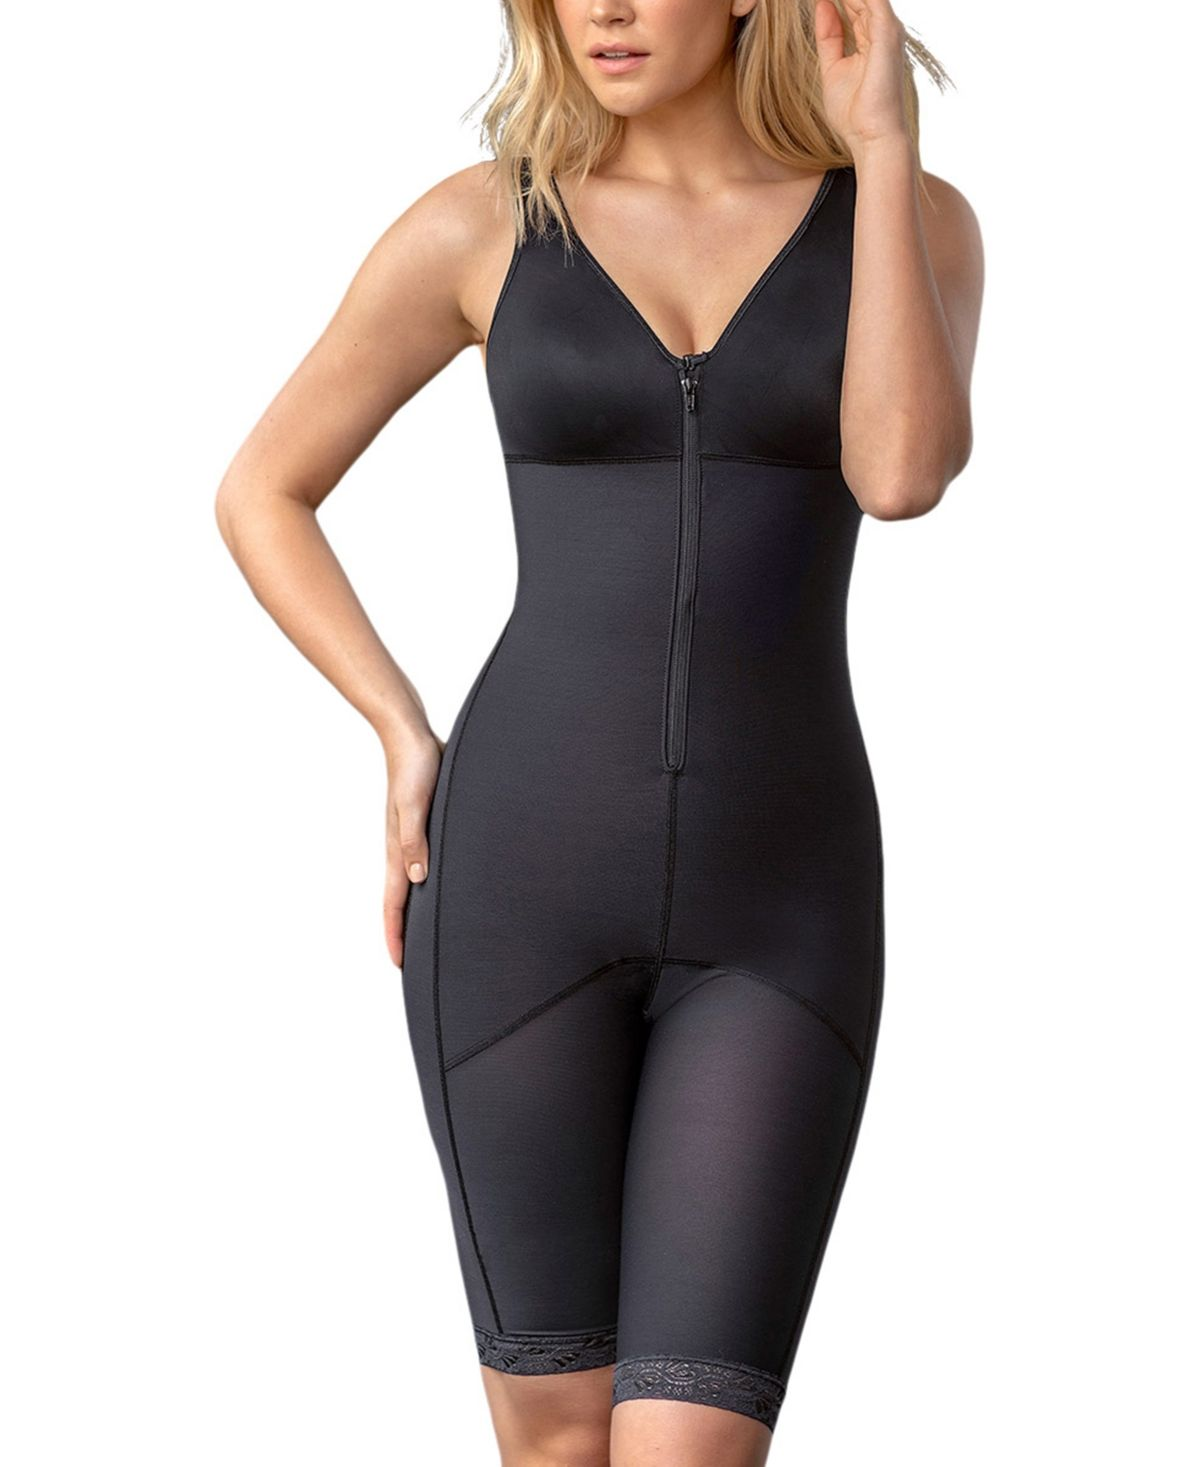 2021 New Shapewear For Women Body Shapers Stores Near Me The Best Shapewear For Plus Size Body Shaper For Men 2.0